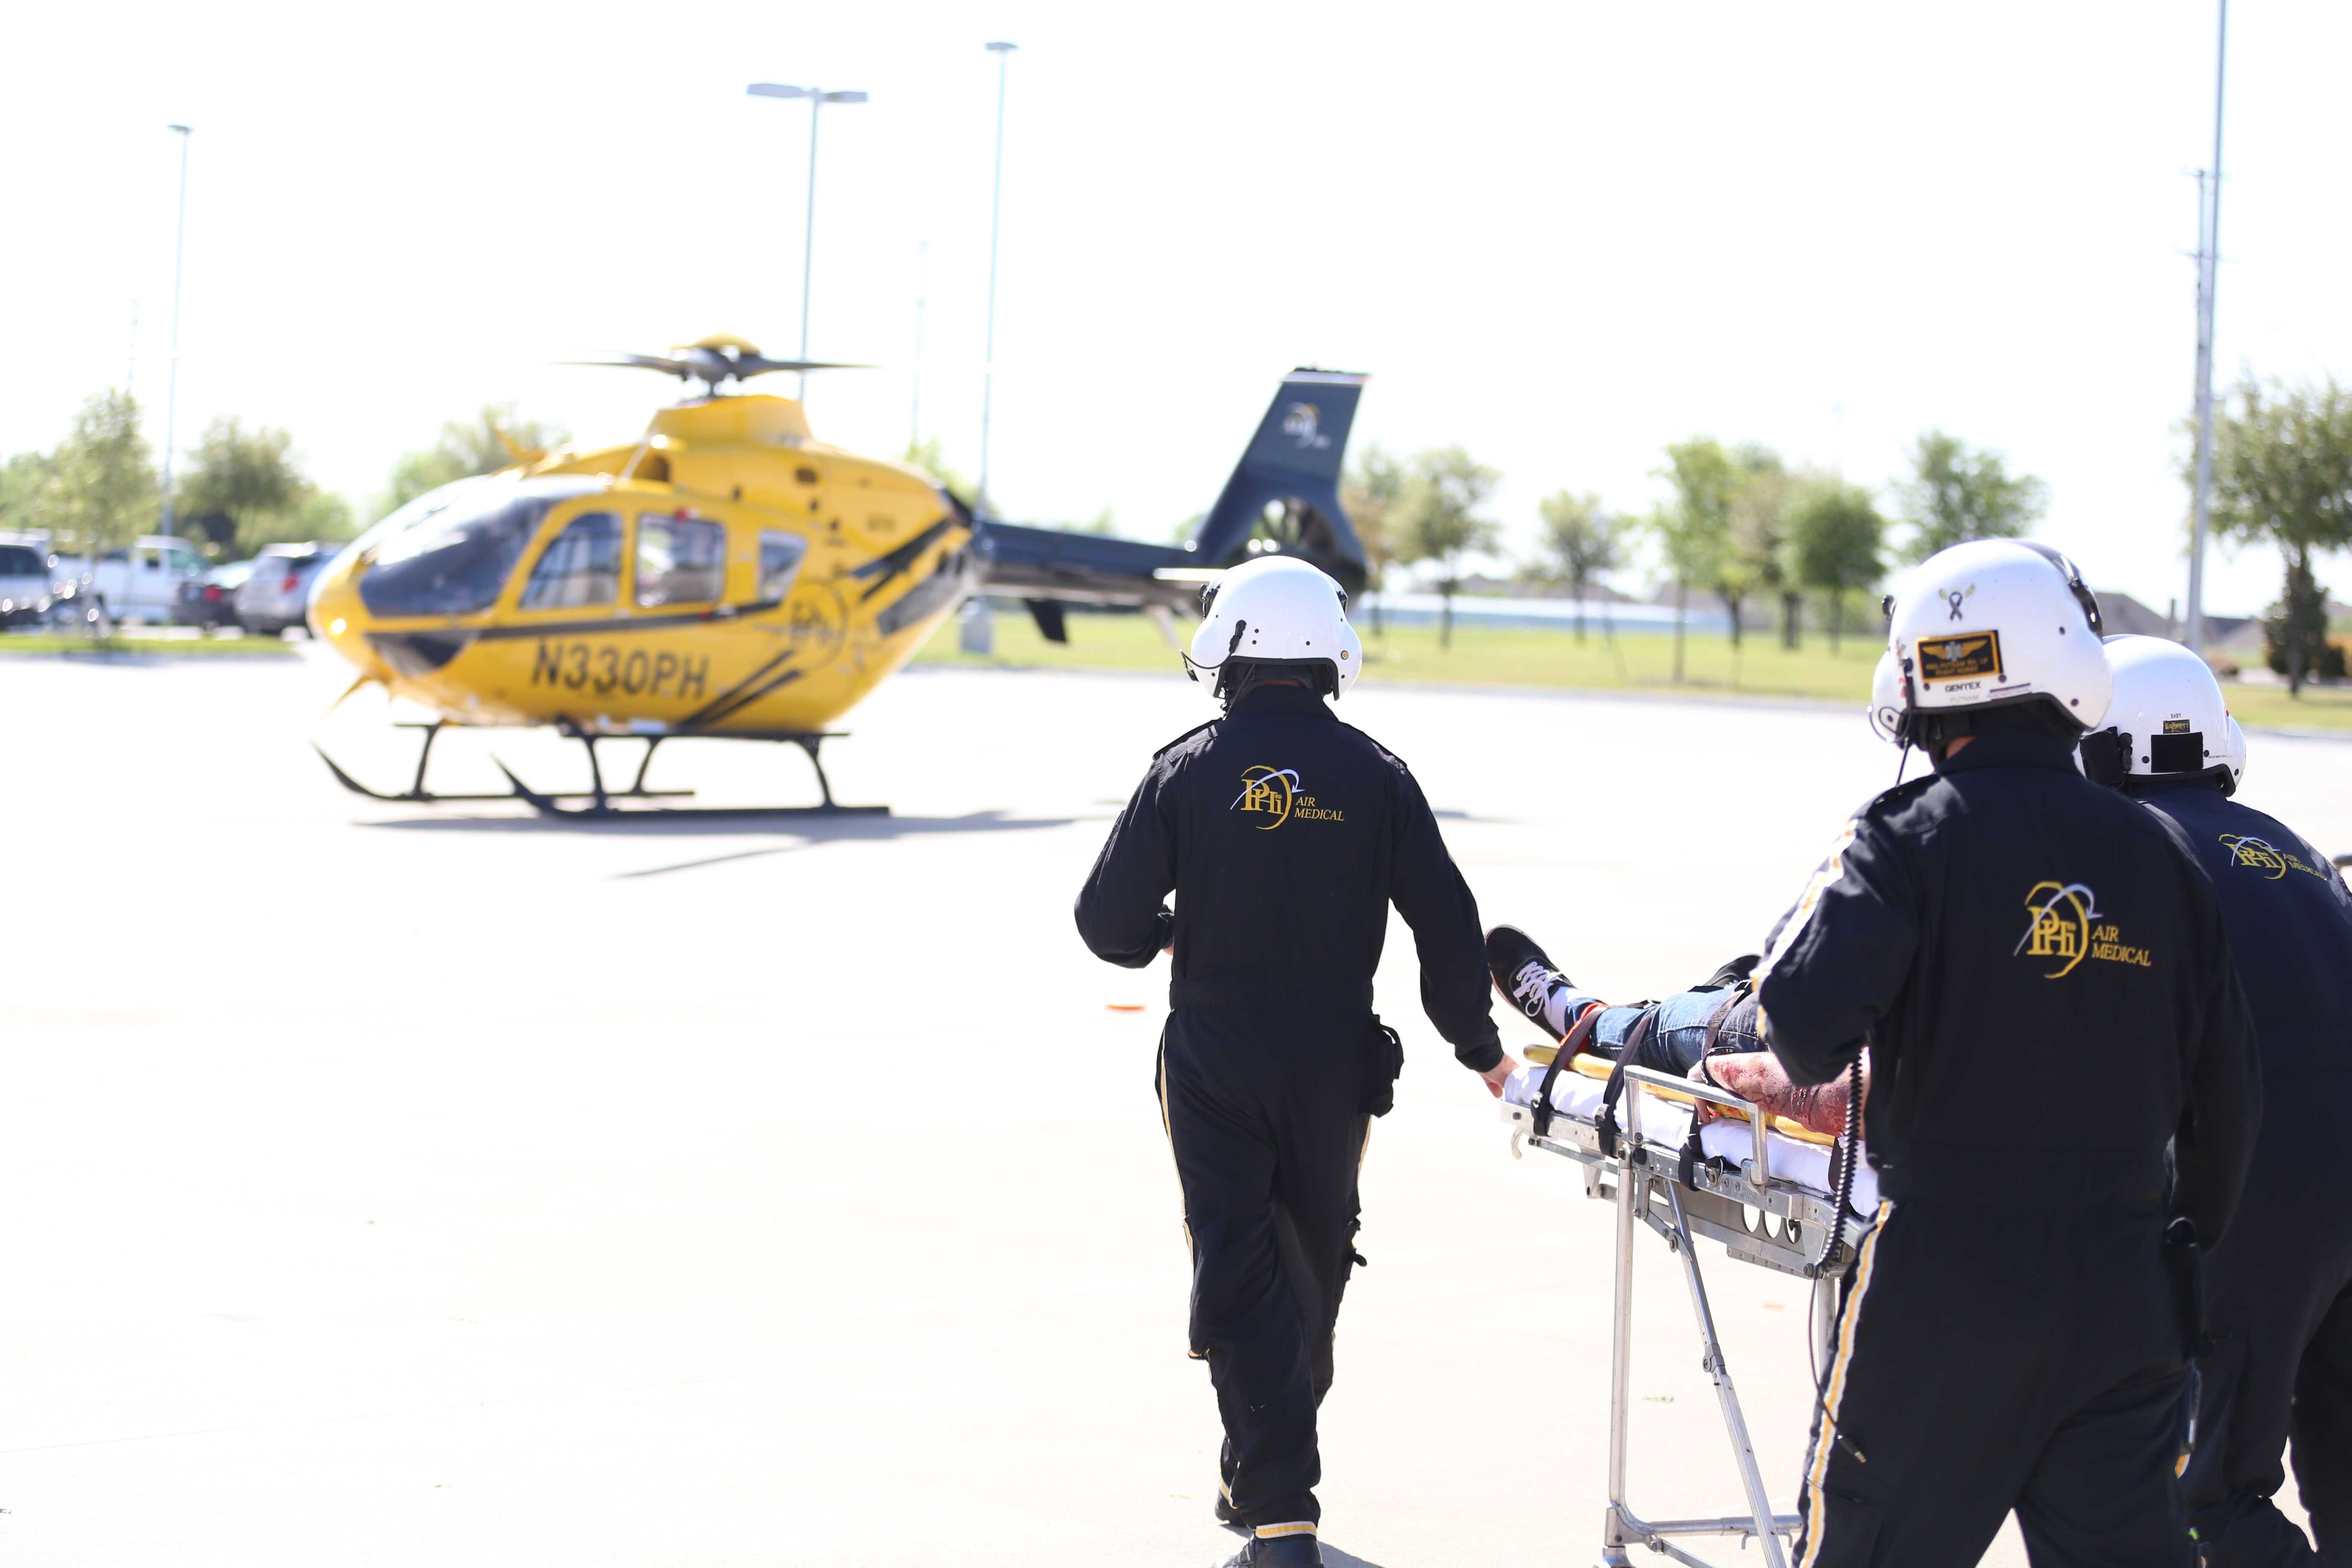 Members+of+PHI+Air+Medical%2C+an+air+ambulance+service%2C+rush+Andrew+Hopkinson+to+the+waiting+helicopter.